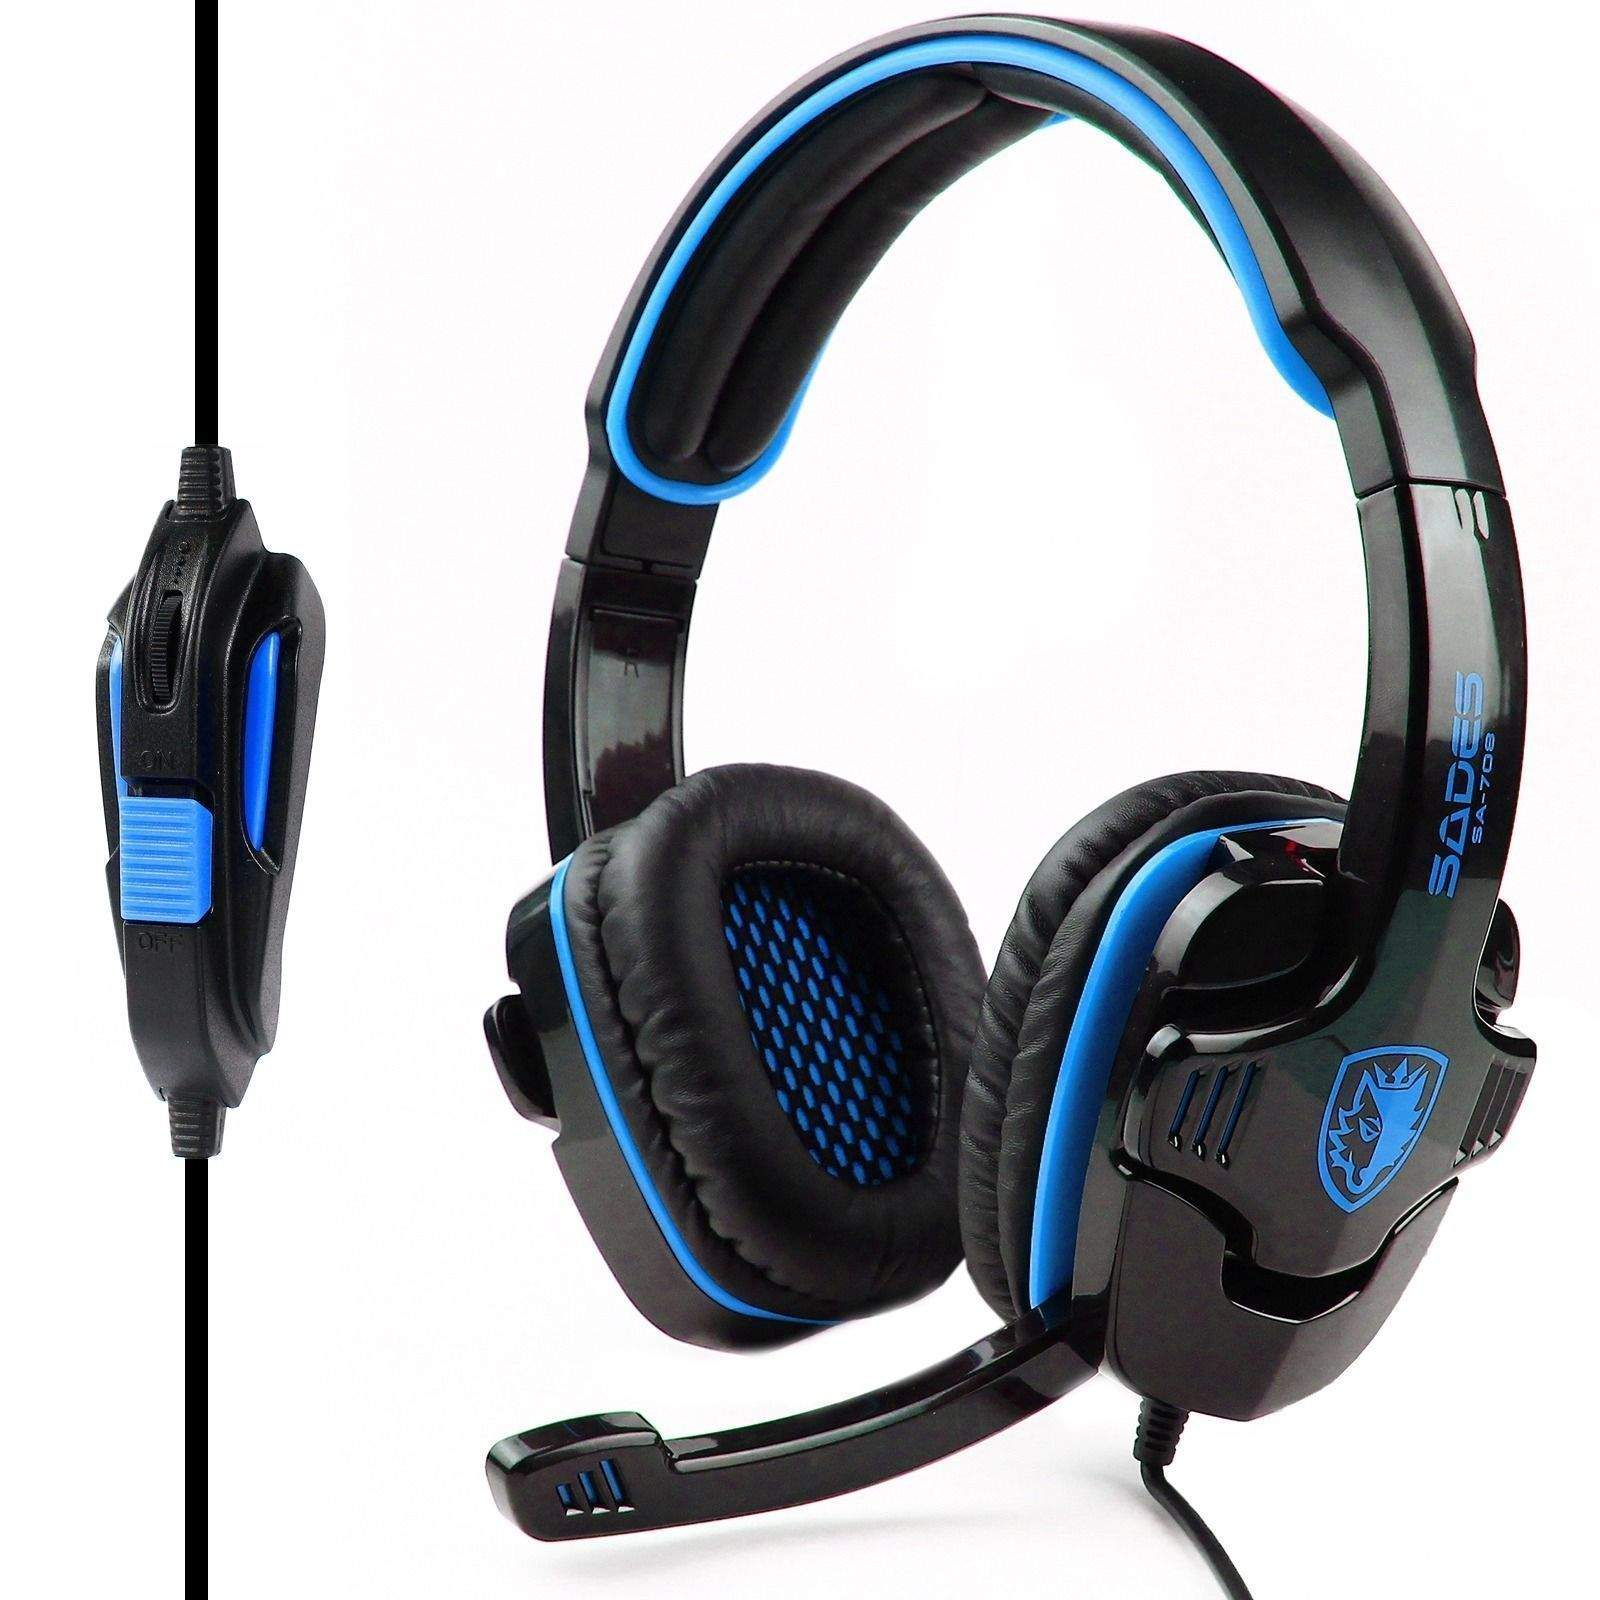 SADES ME333 Gaming Headset GT Stereo HiFi Gaming Headset Headphone with Microphone for PS4 Xbox360 PC, Mac, SmartPhone